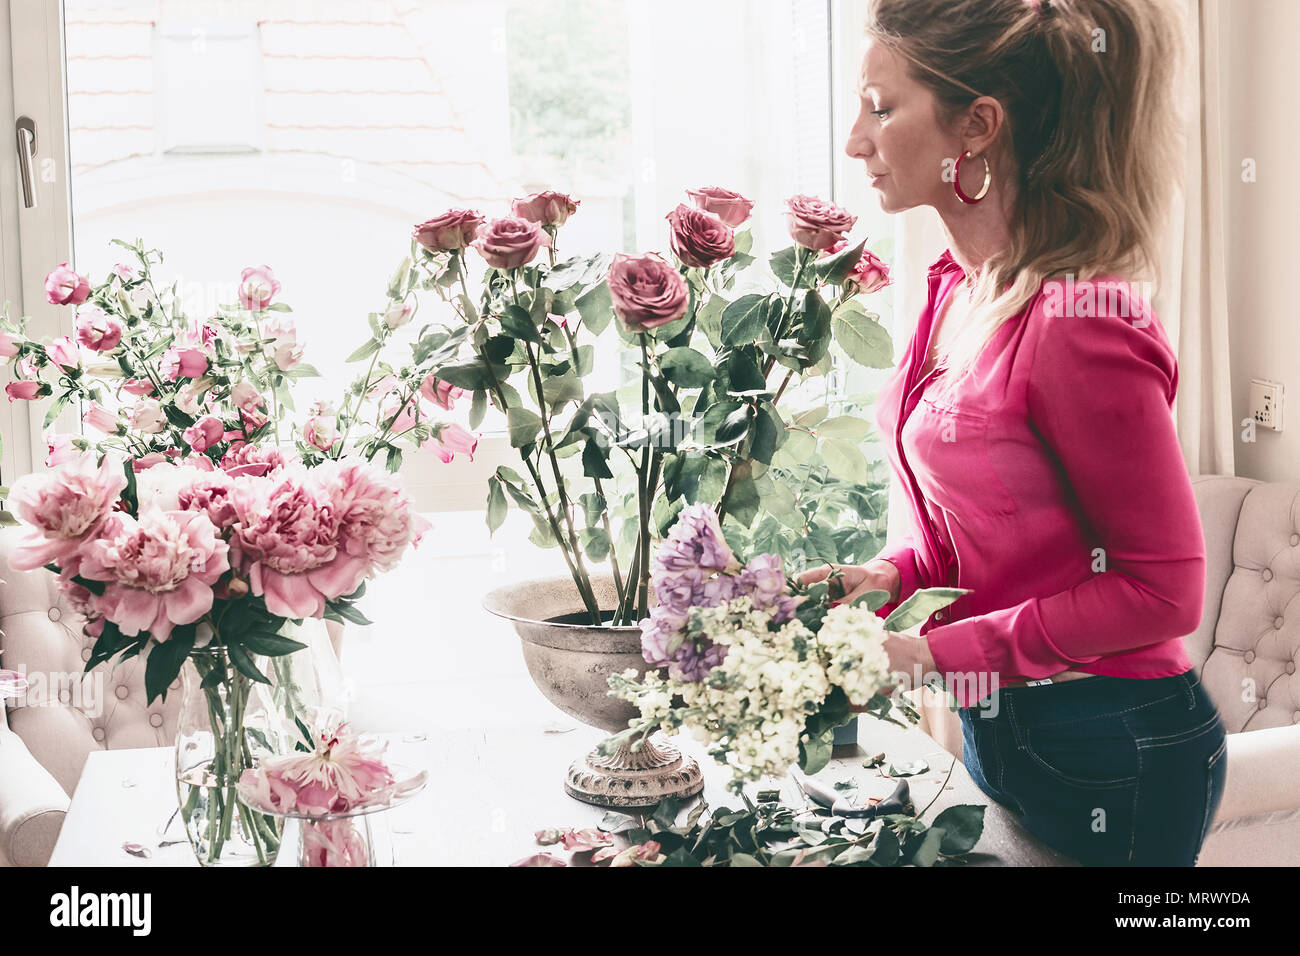 Pretty Modern Florist Women Arranging Great Festive Flowers Bouquet With Urn Vase Roses And Various Flowers At Window Step By Step Holidays And Eve Stock Photo Alamy